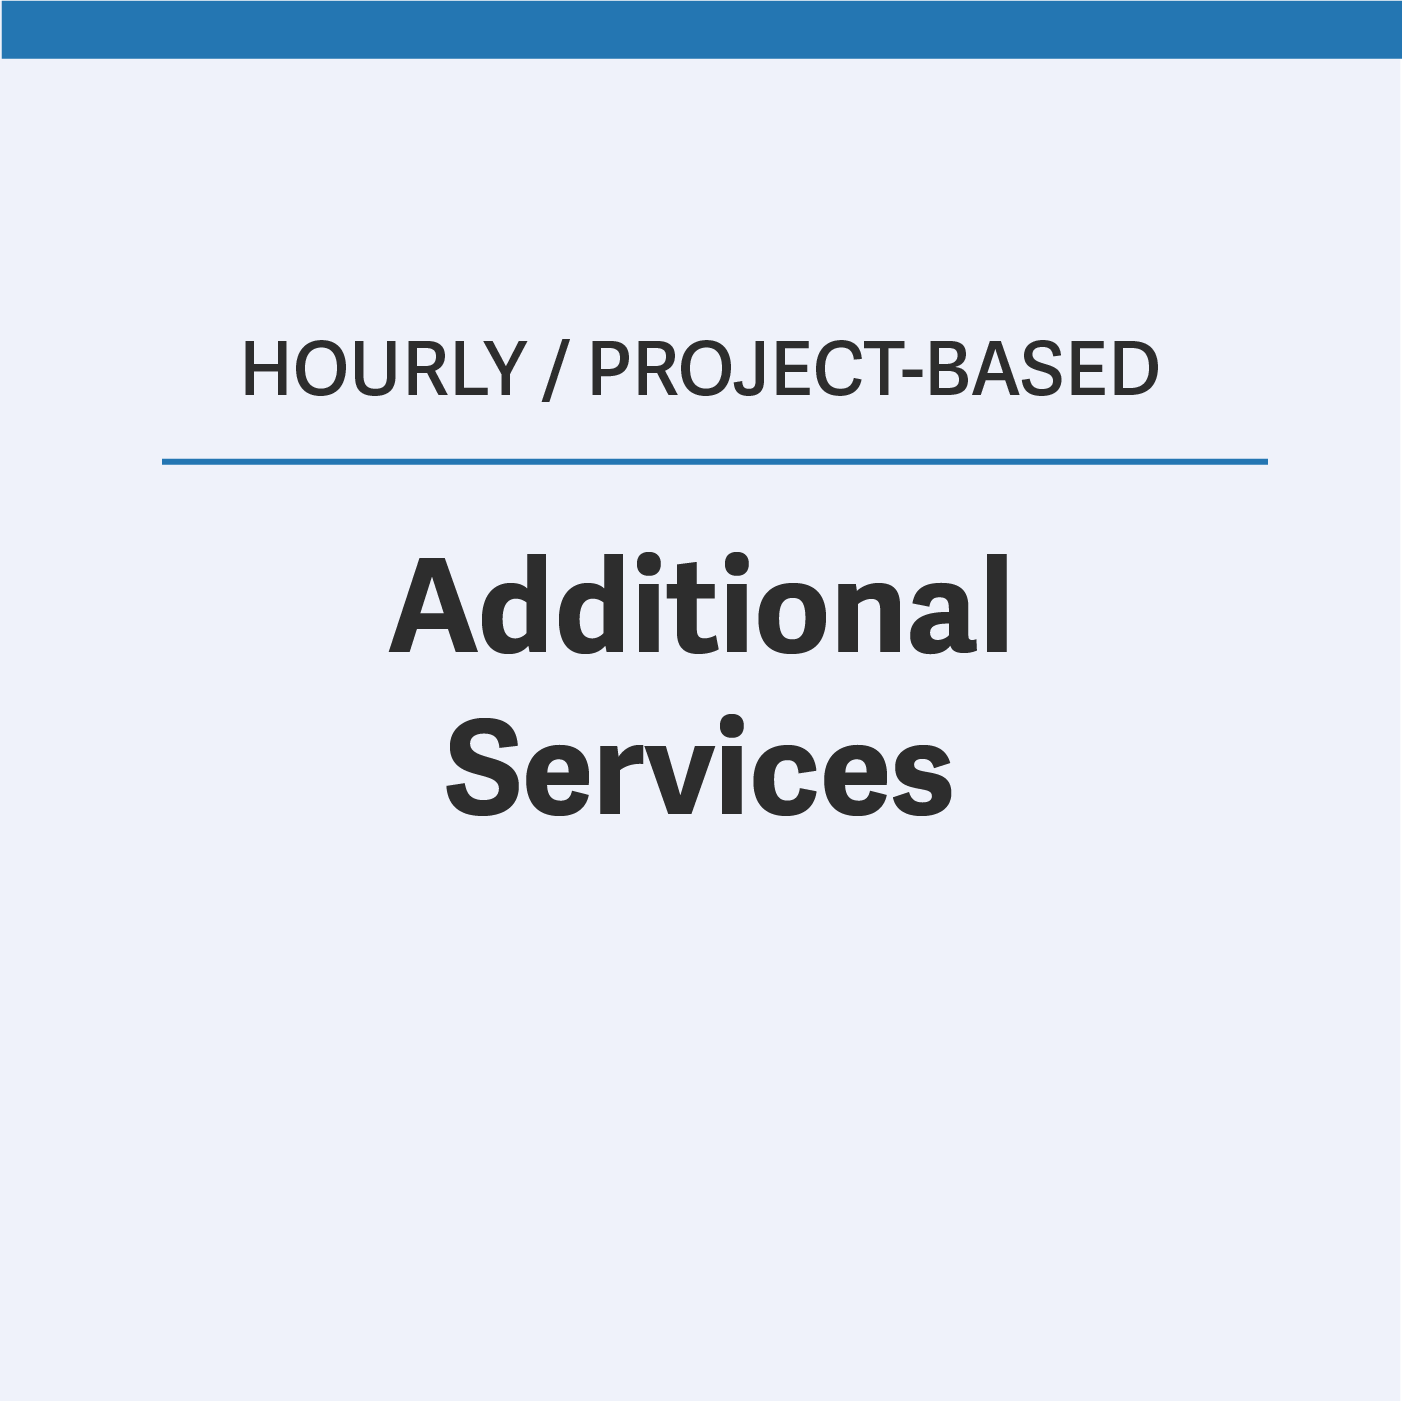 Need additional guidance or assistance? Want to outsource BD, compliance, proposal development or other back-office operations to us? Let us help. View our list of services that can be obtained through an hourly, commission or project-based rate.